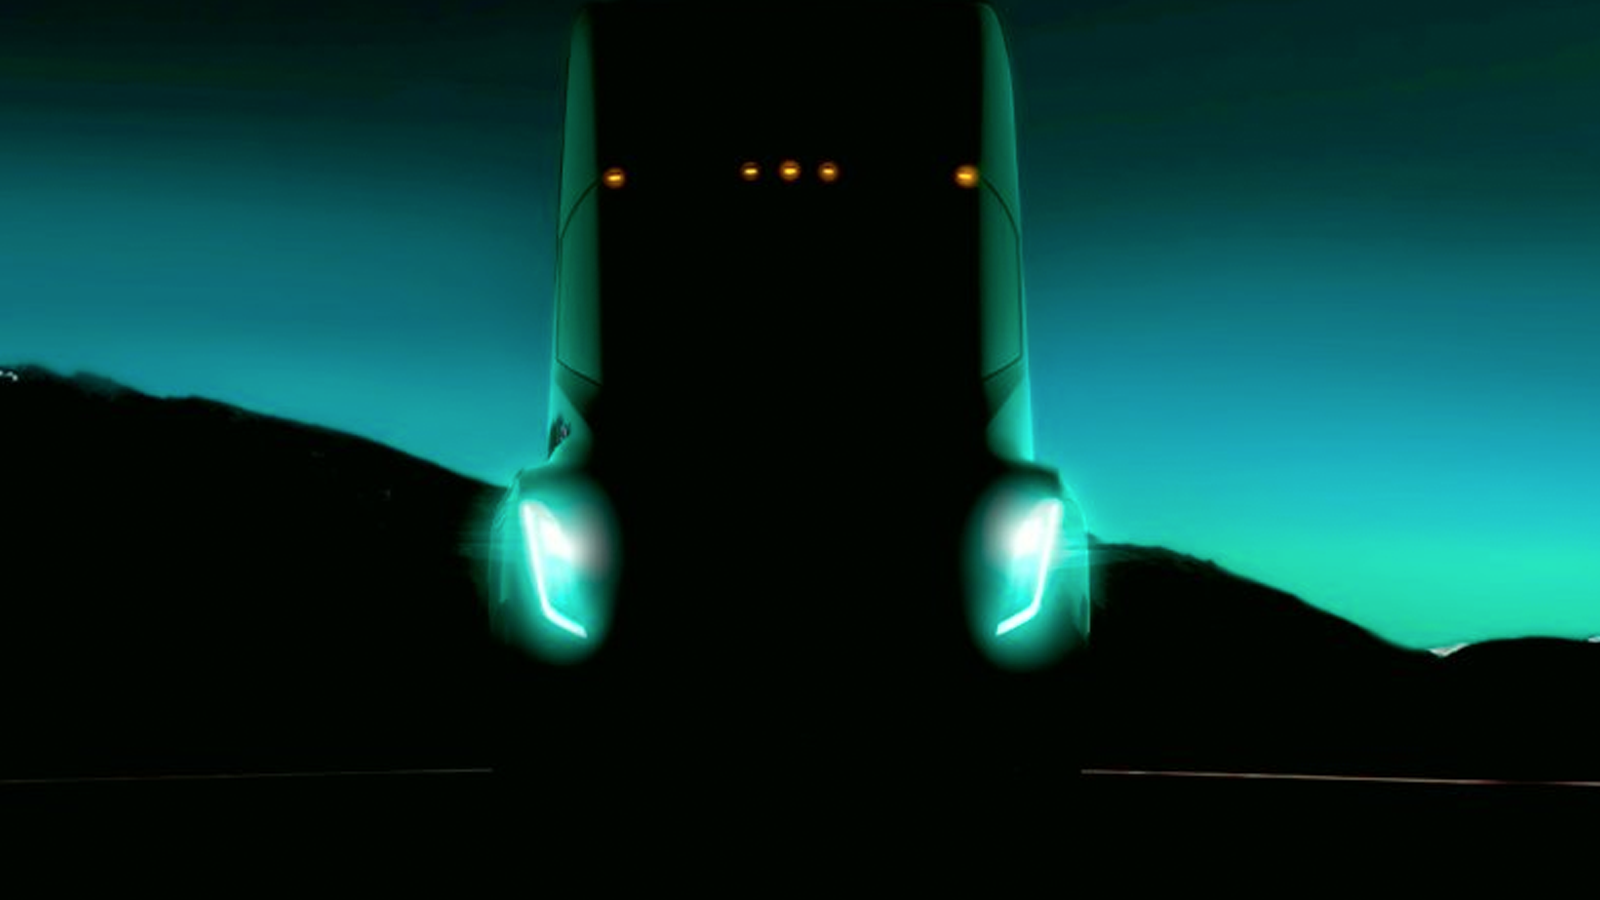 Tesla autonomous semi-trucks will move in platoons, prototype coming soon